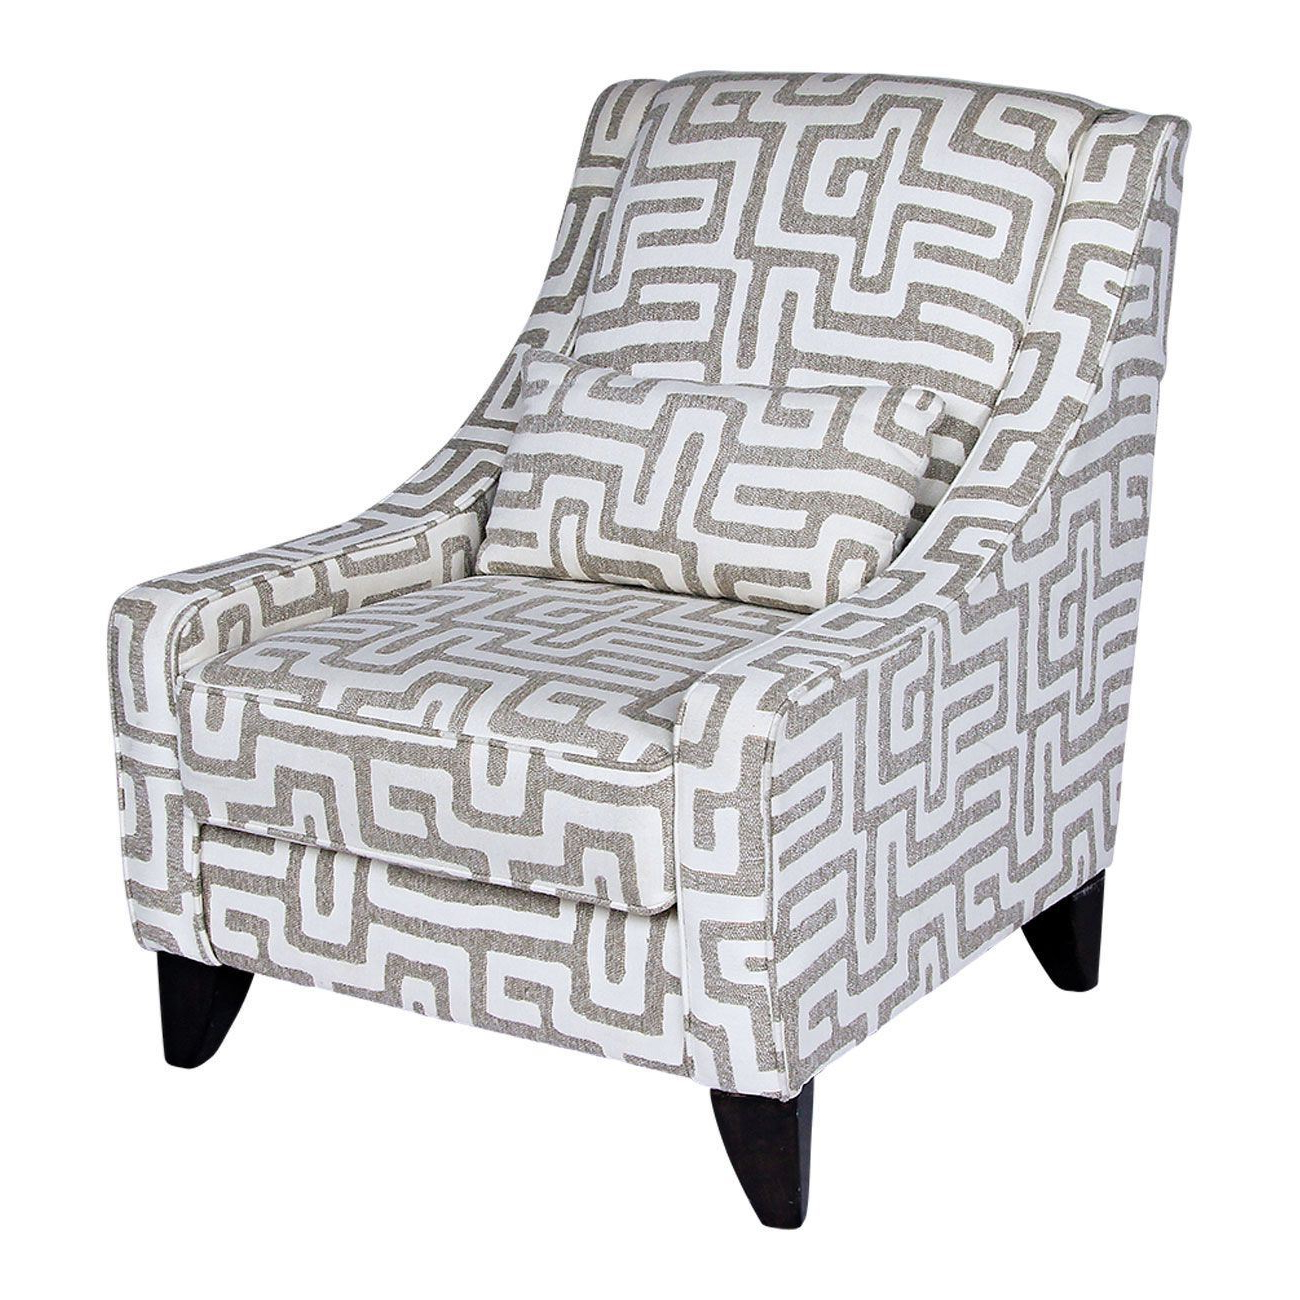 2019 Jaxon Totem Oatmeal Chair – Woodstock Furniture & Mattress Within Jaxon Grey Sideboards (Gallery 8 of 20)